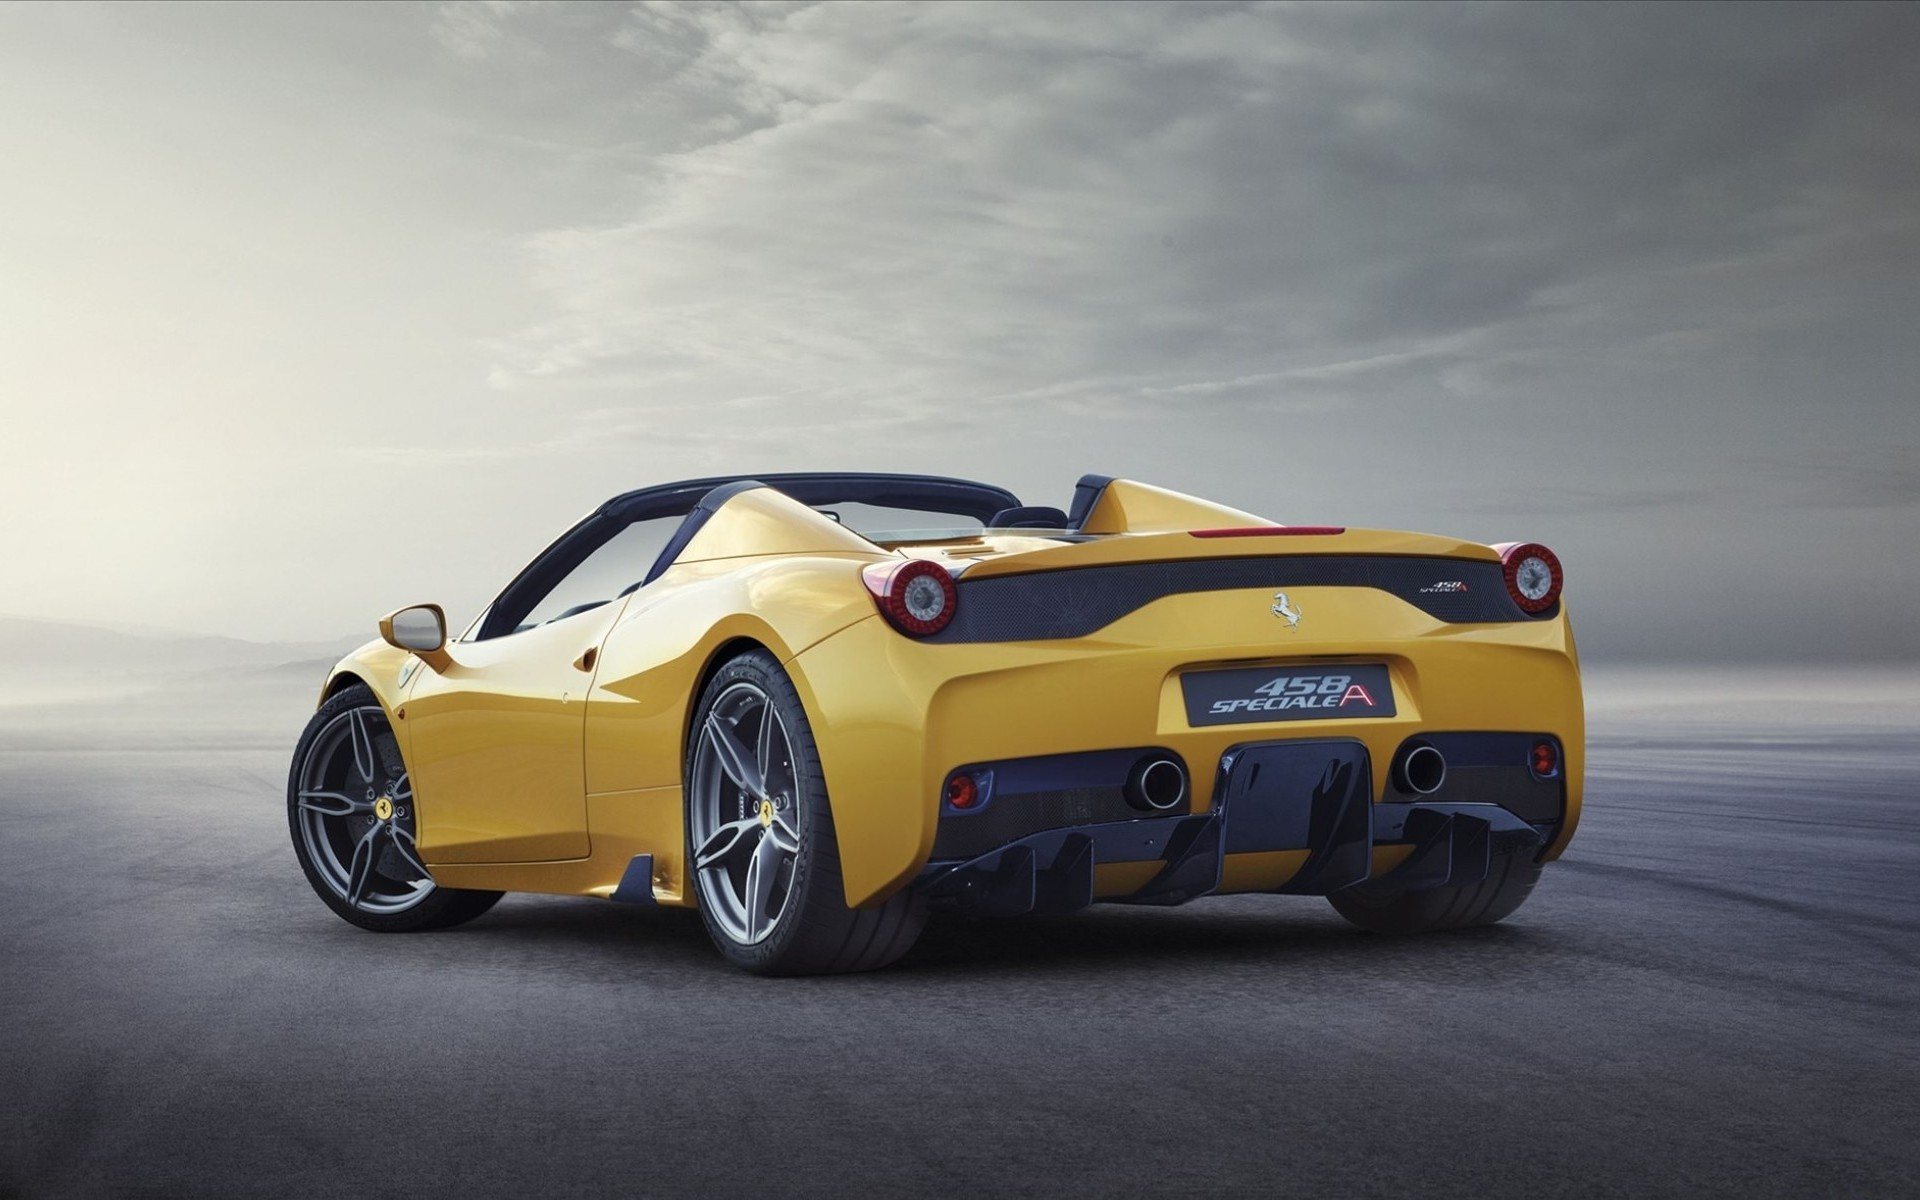 Ferrari 458 Full HD Wallpaper And Background Image